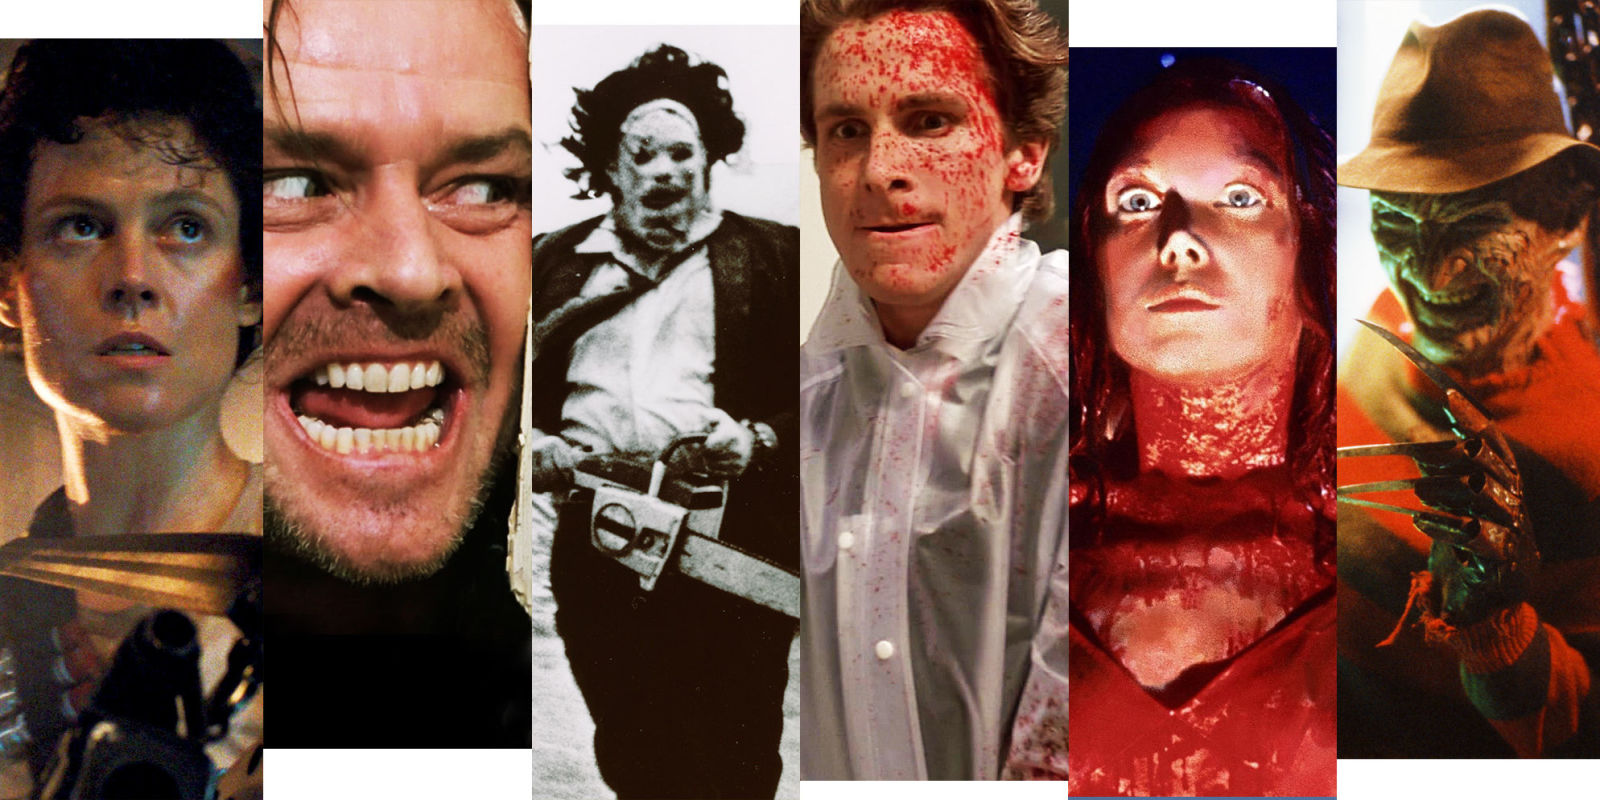 15 Best Halloween Songs for Adults - A Halloween Playlist You'll ...